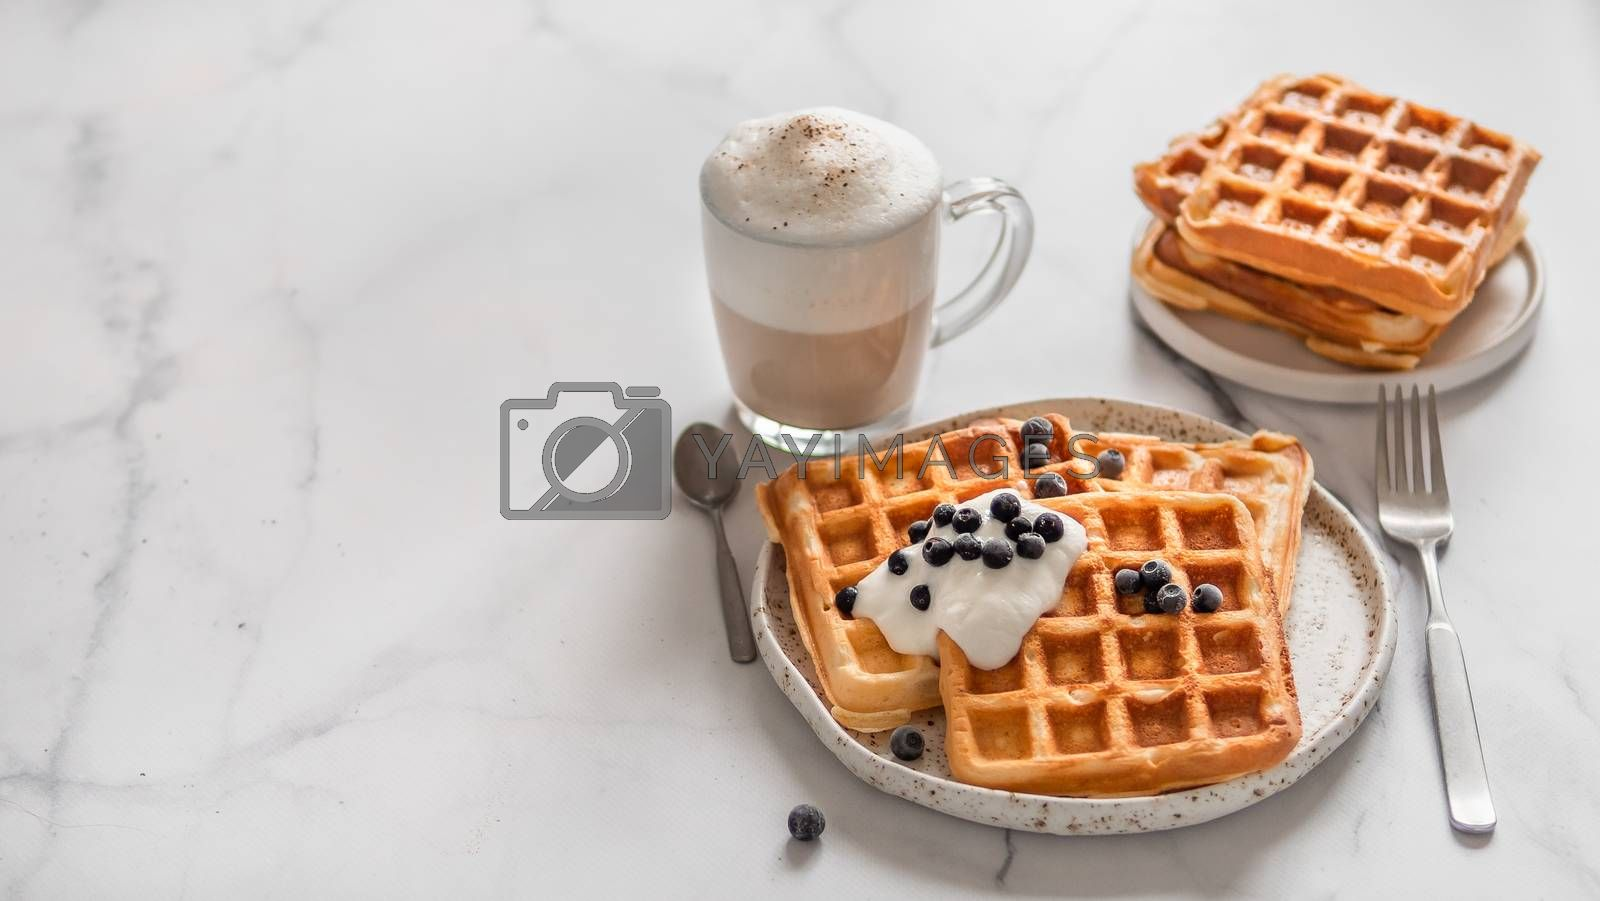 Delicious homemade baked belgian waffles with greek yogurt, blueberries and cappuccino on white marble background. Perfect breakfast with copy space for text or design